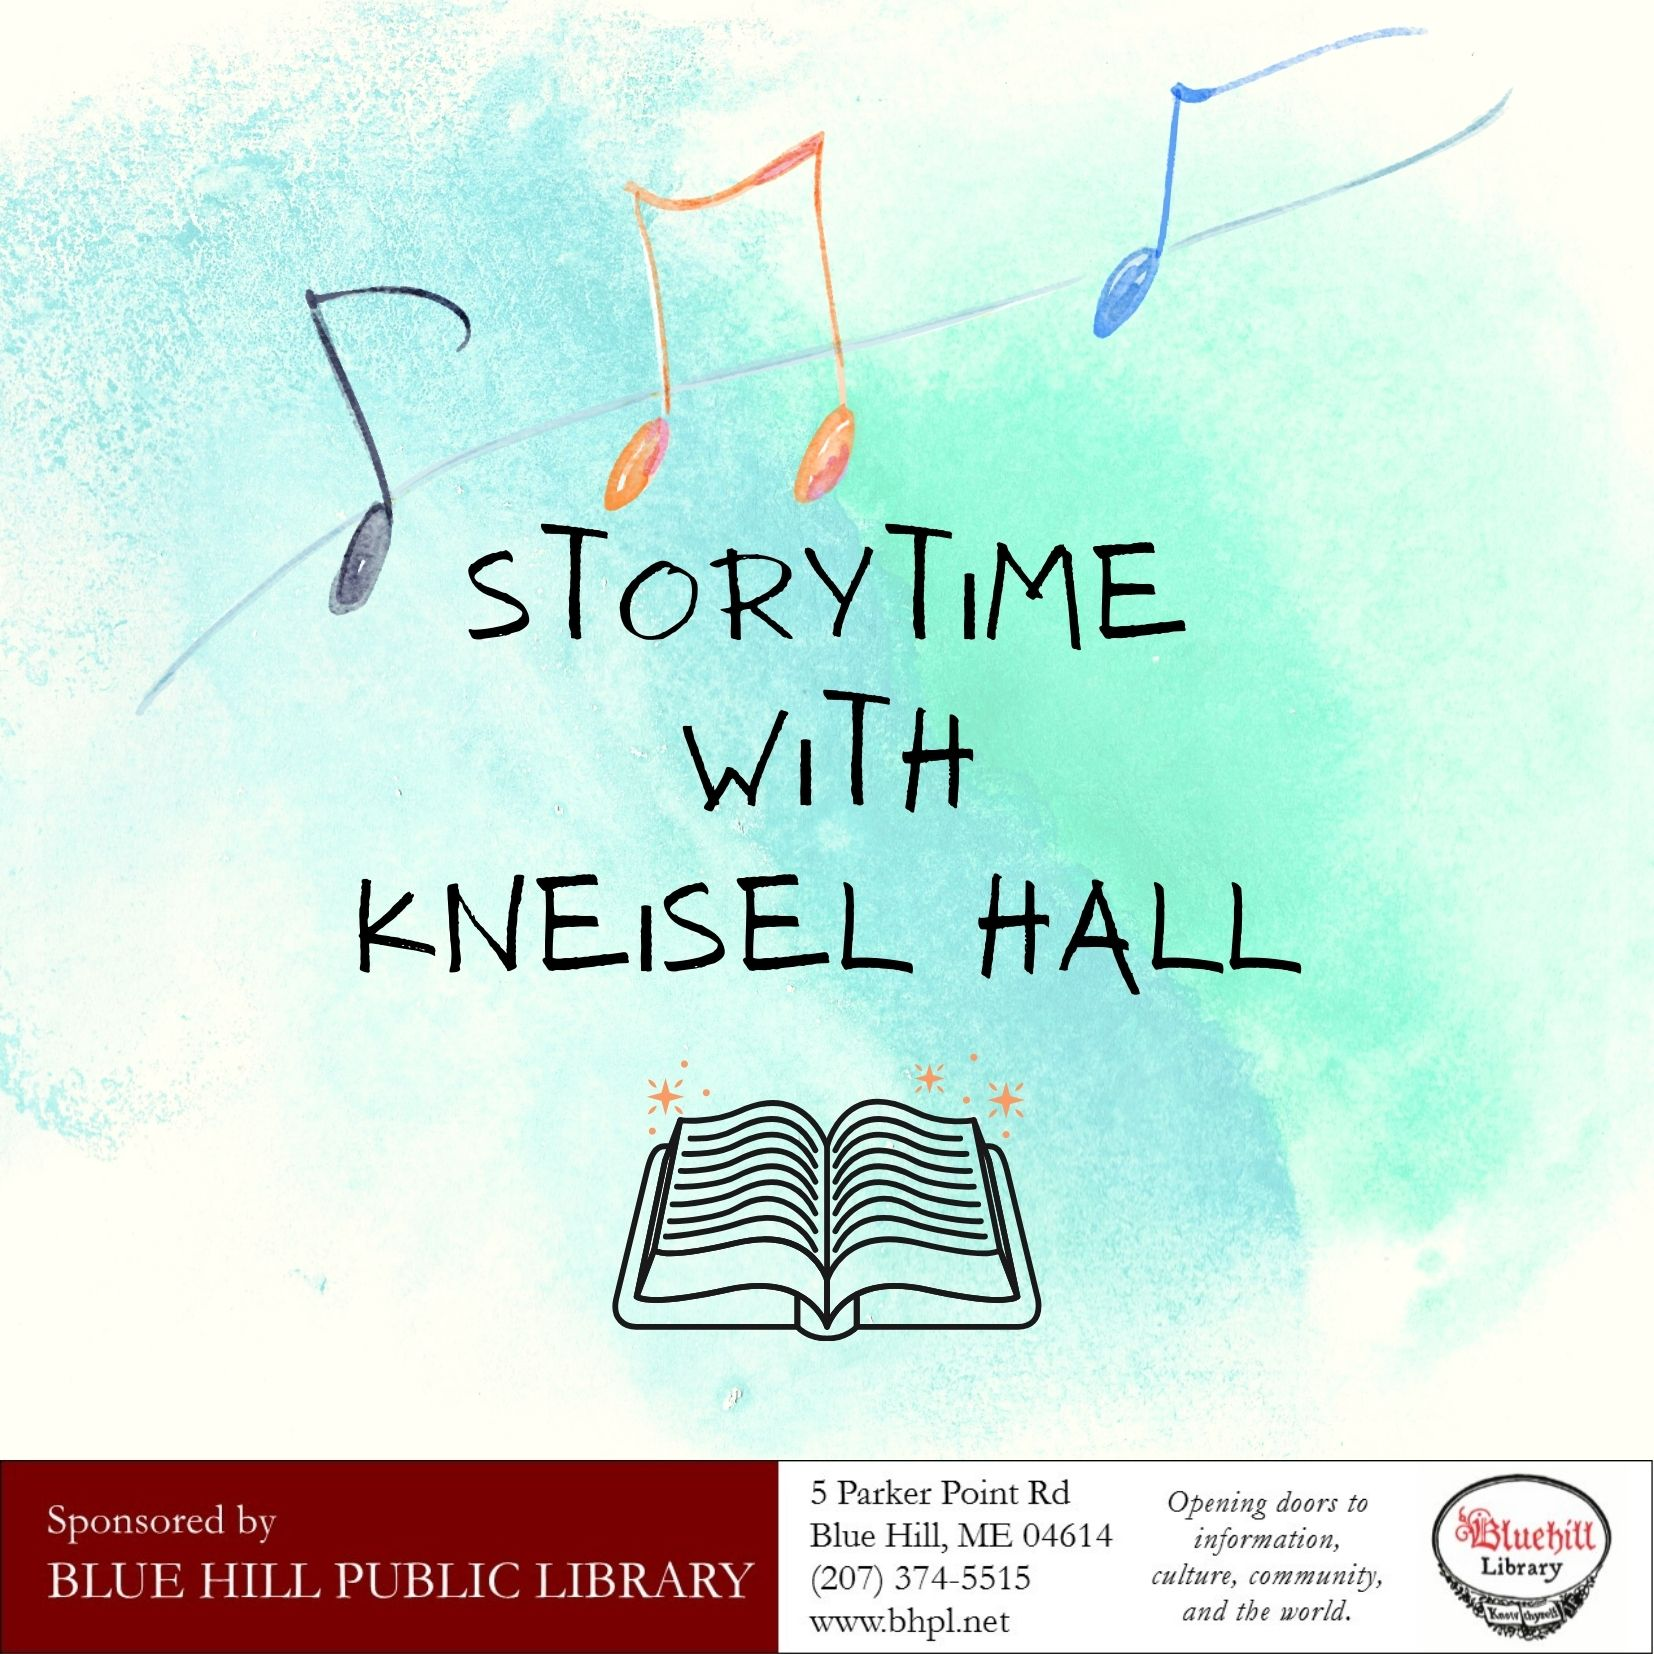 Storytime with Kneisel Hall